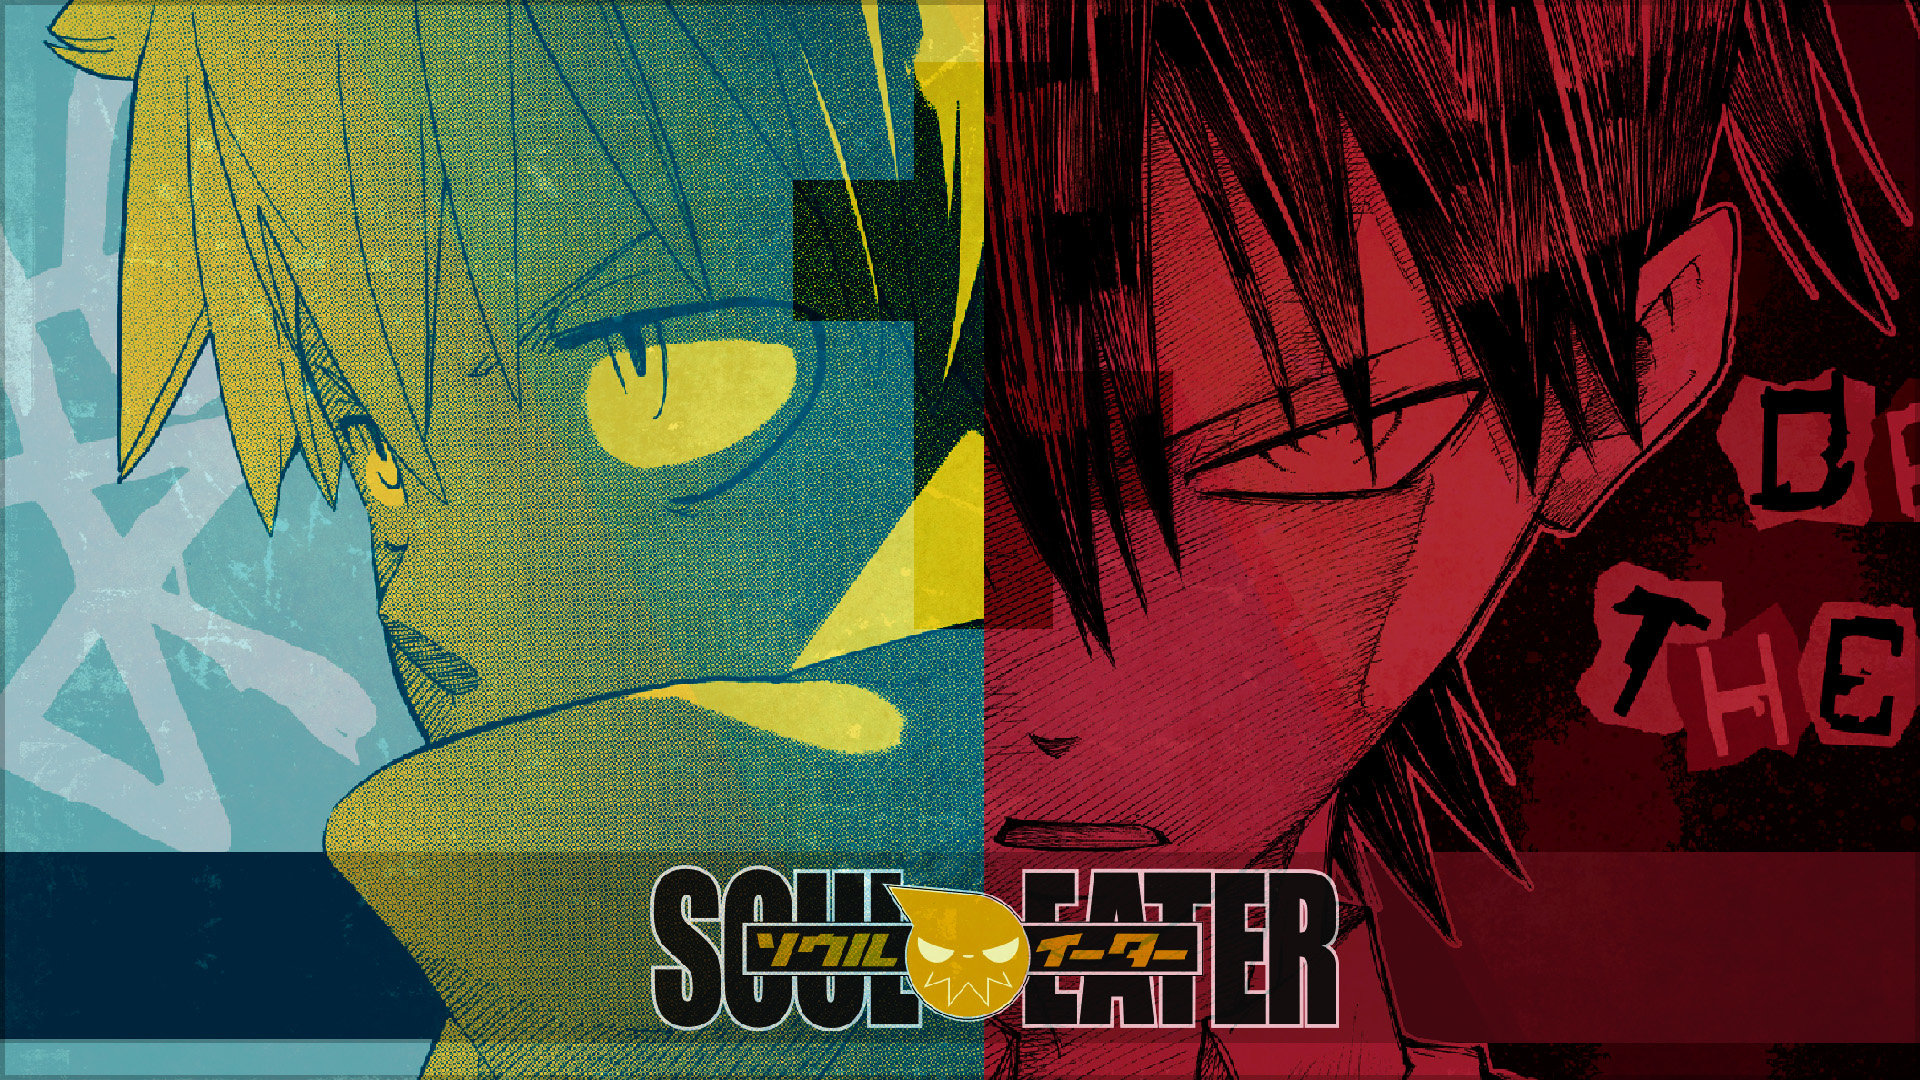 Best Soul Eater Wallpaper ID469838 For High Resolution Full Hd 1920x1080 Desktop